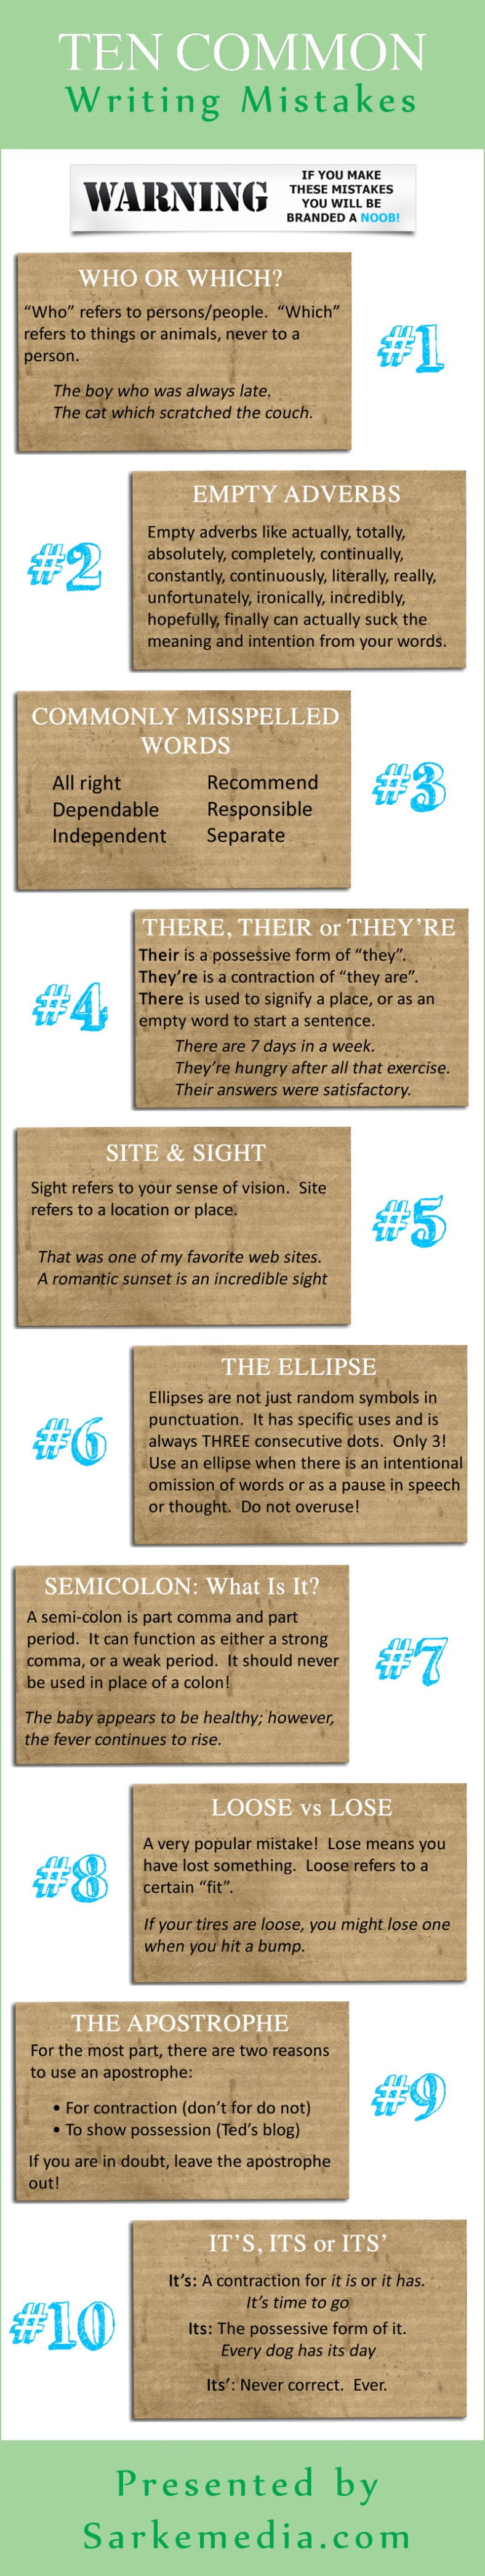 writing-mistakes-infographic-copy